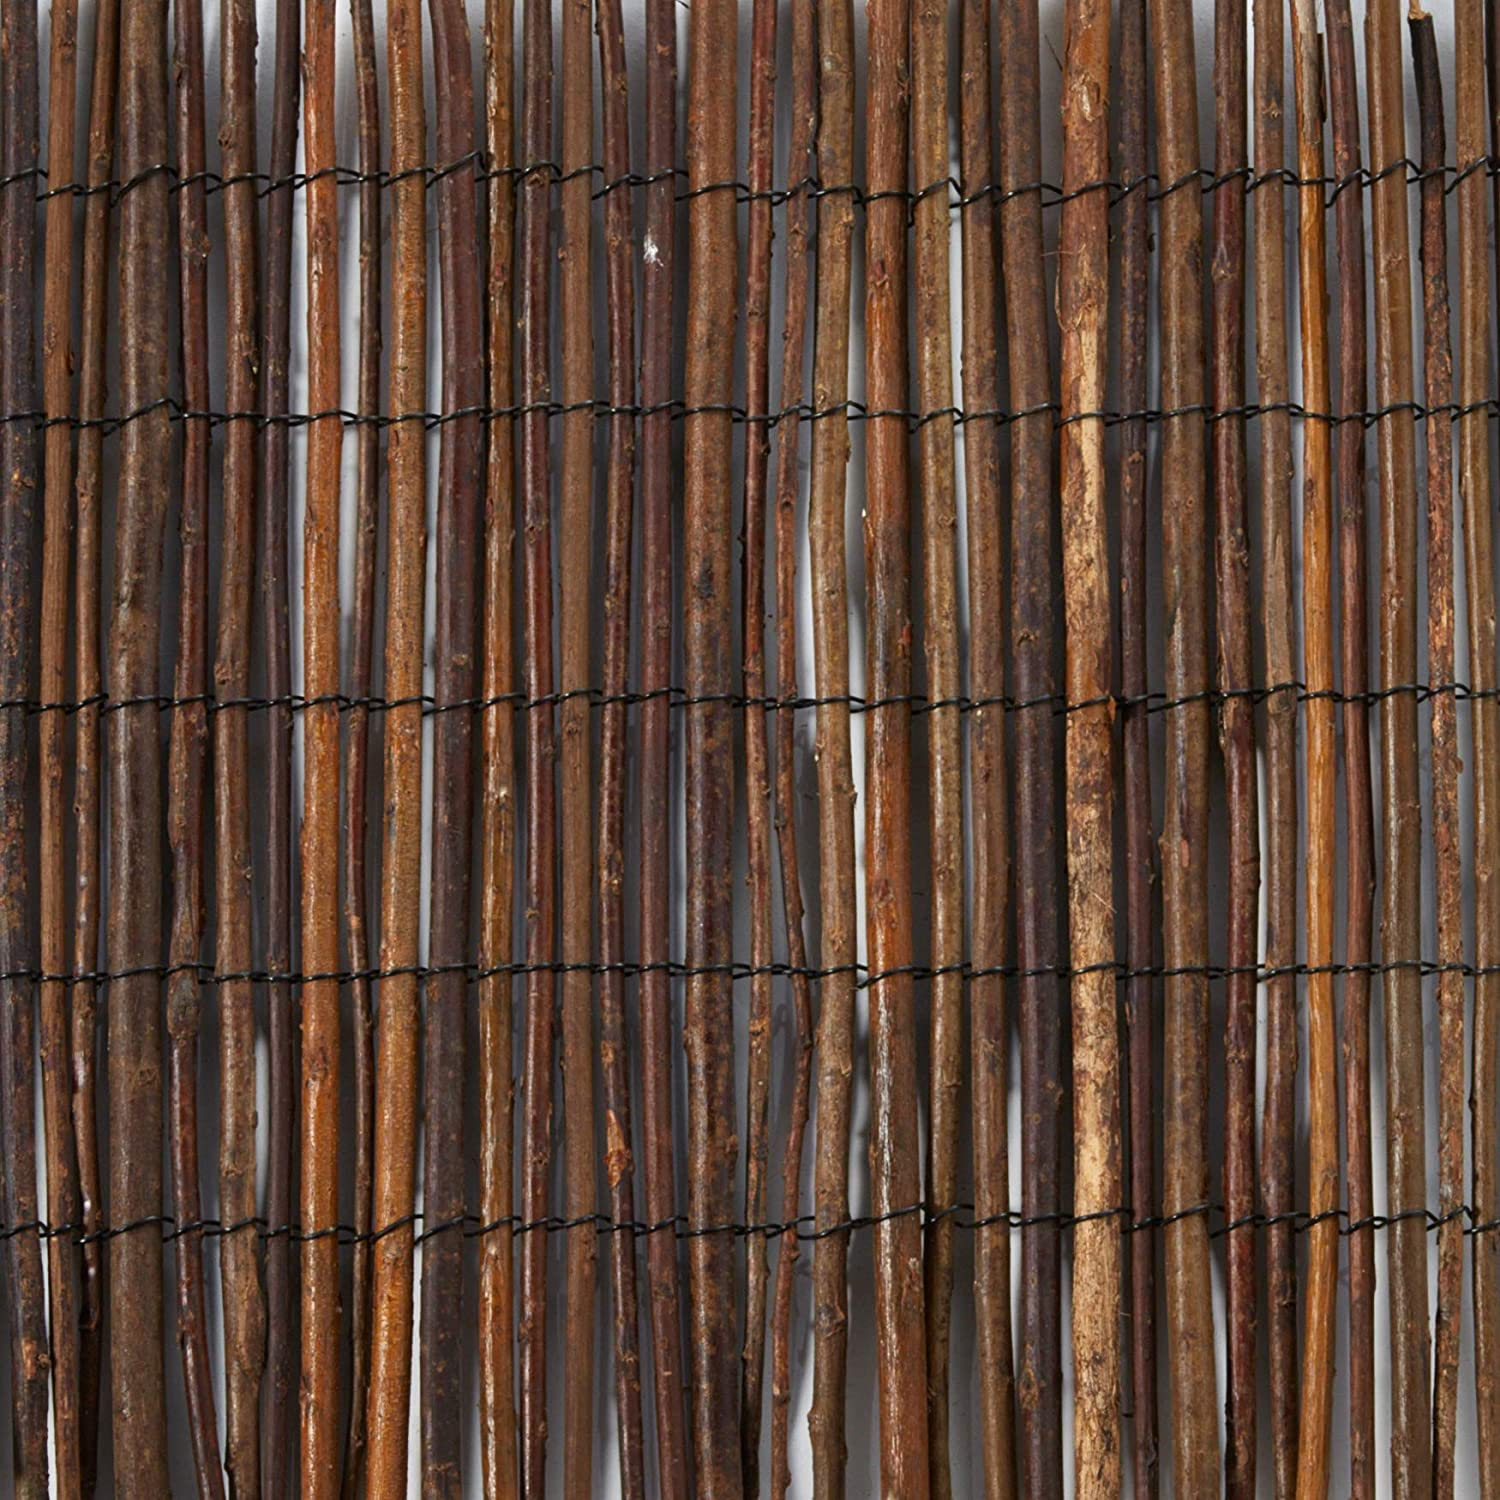 Master Garden Products WF Screen, 4 by 14-Feet Willow Fencing, 4 feet High x feet Long, Brown